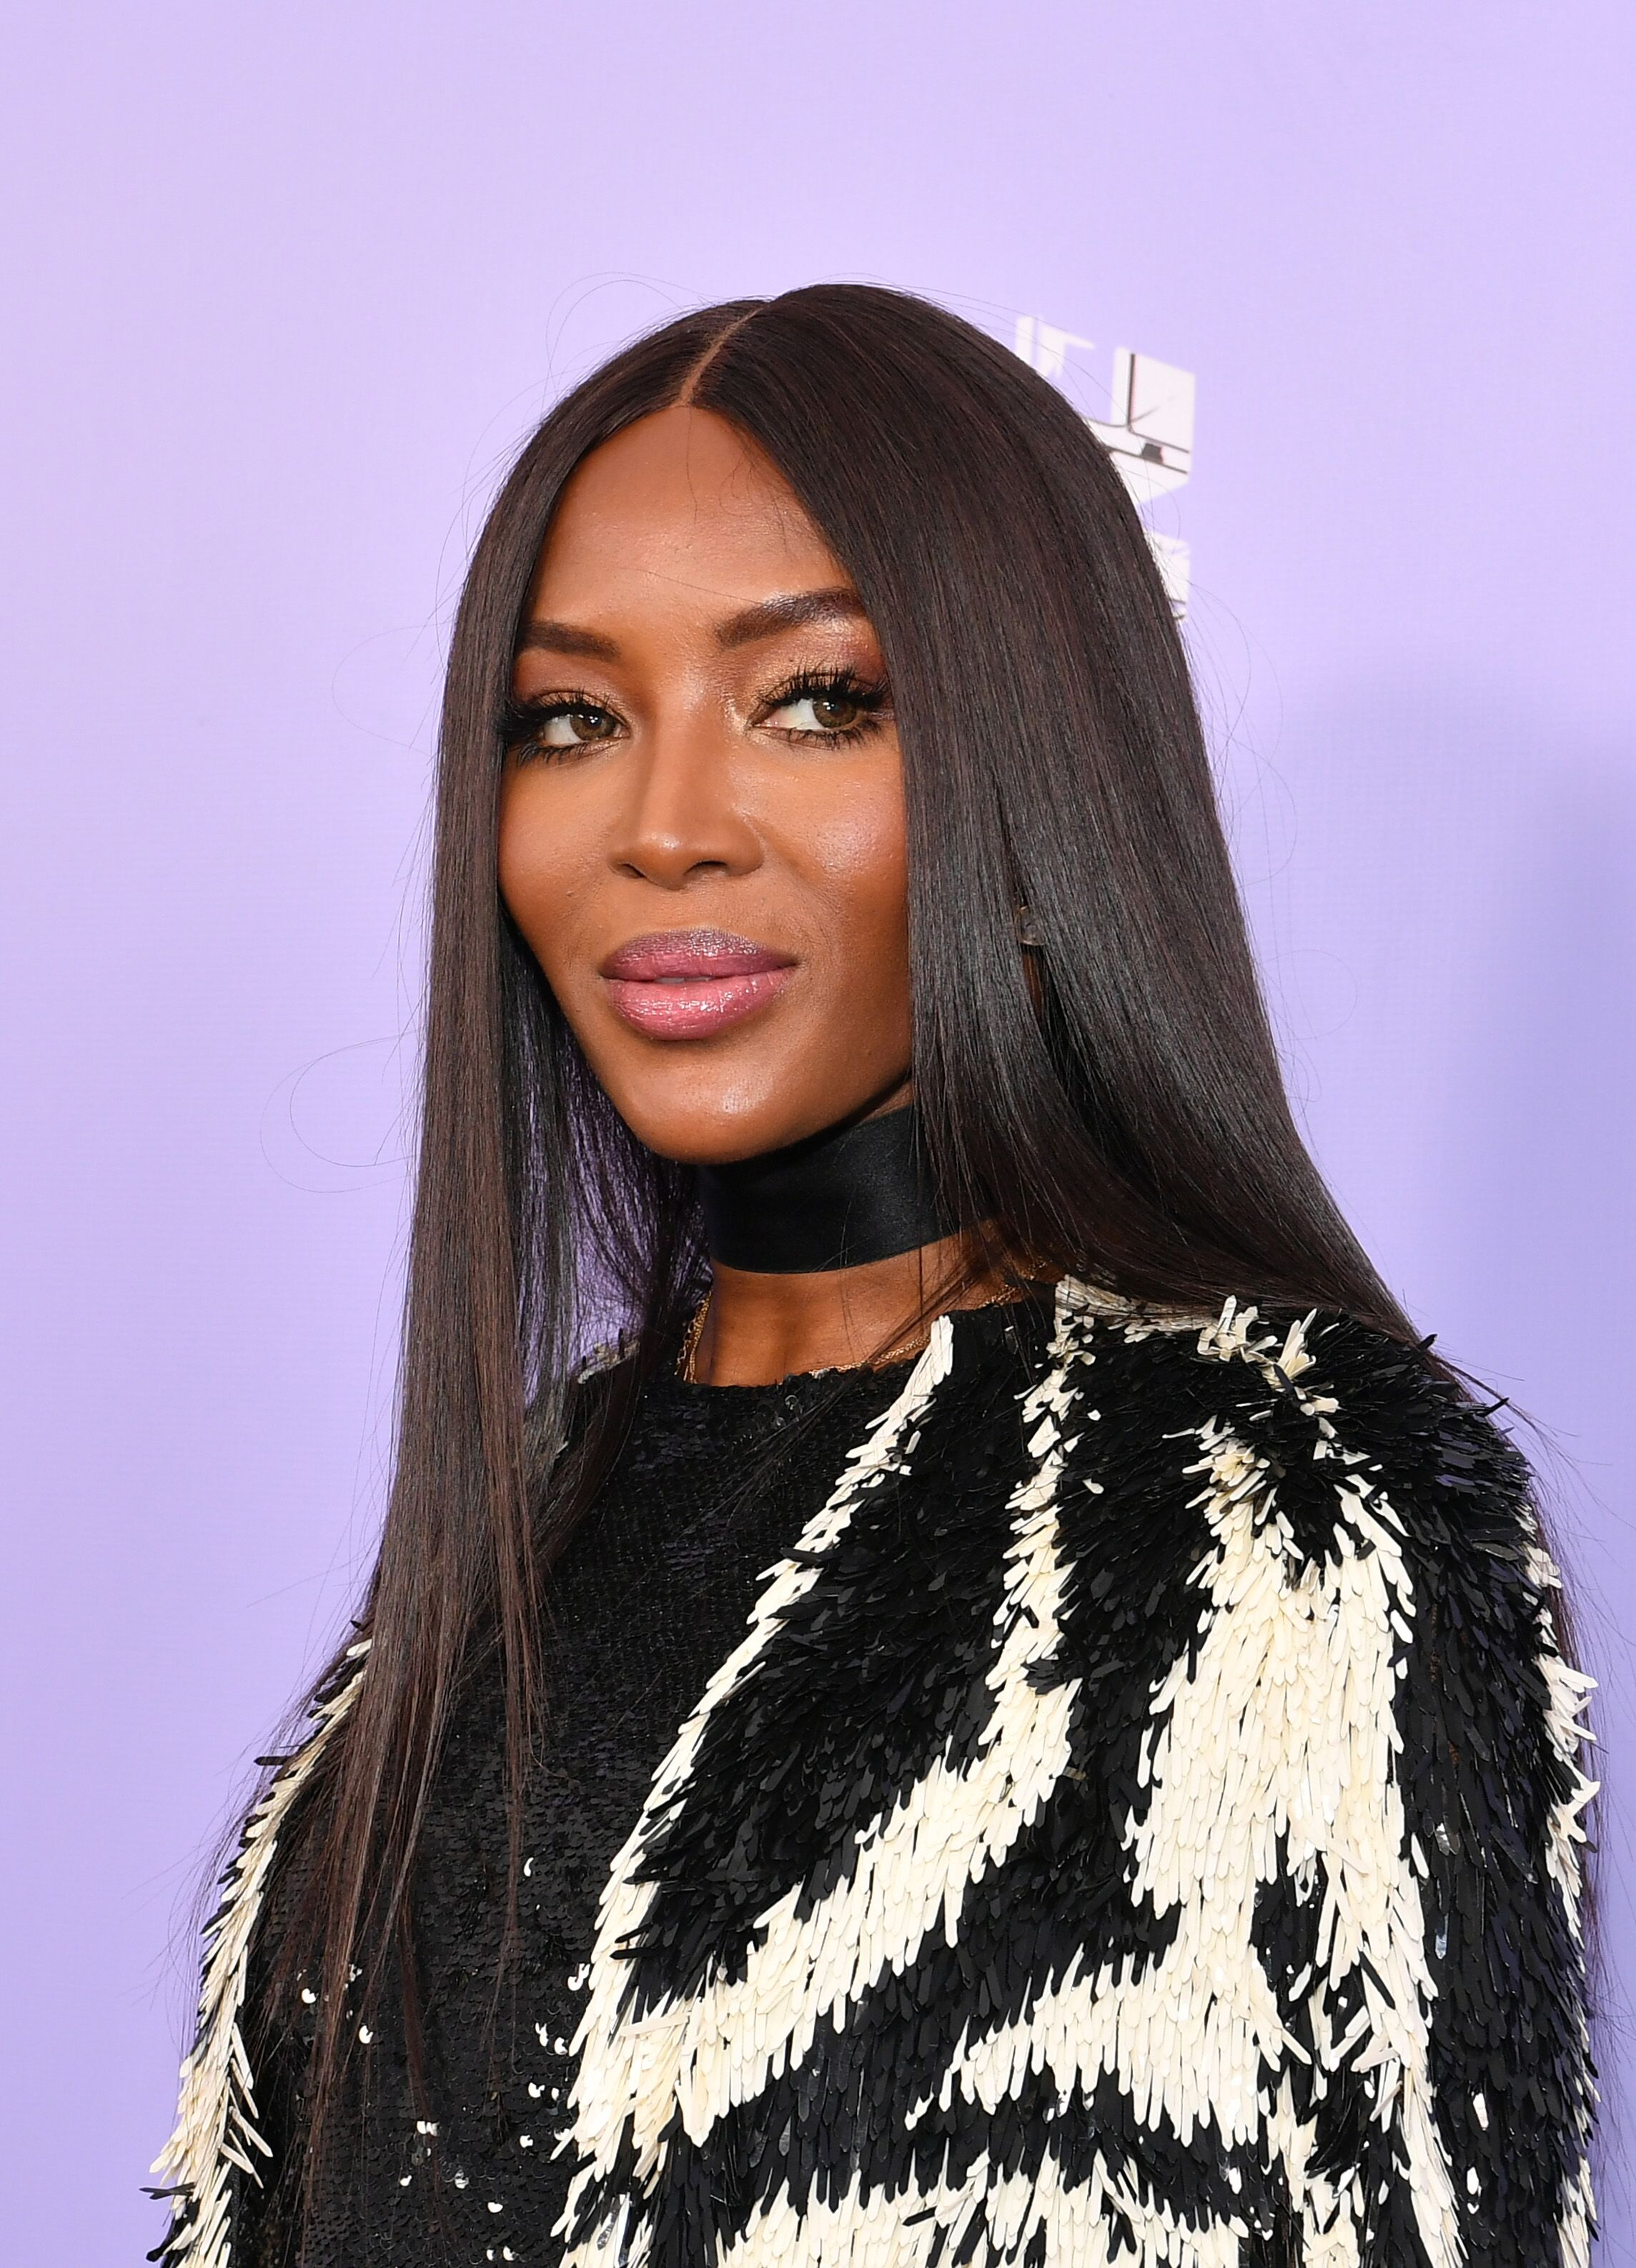 Model, Presenter Naomi Campbell attends 2018 Fragrance Foundation Awards at Alice Tully Hall at Lincoln Center on June 12, 2018 | Photo: Getty Images